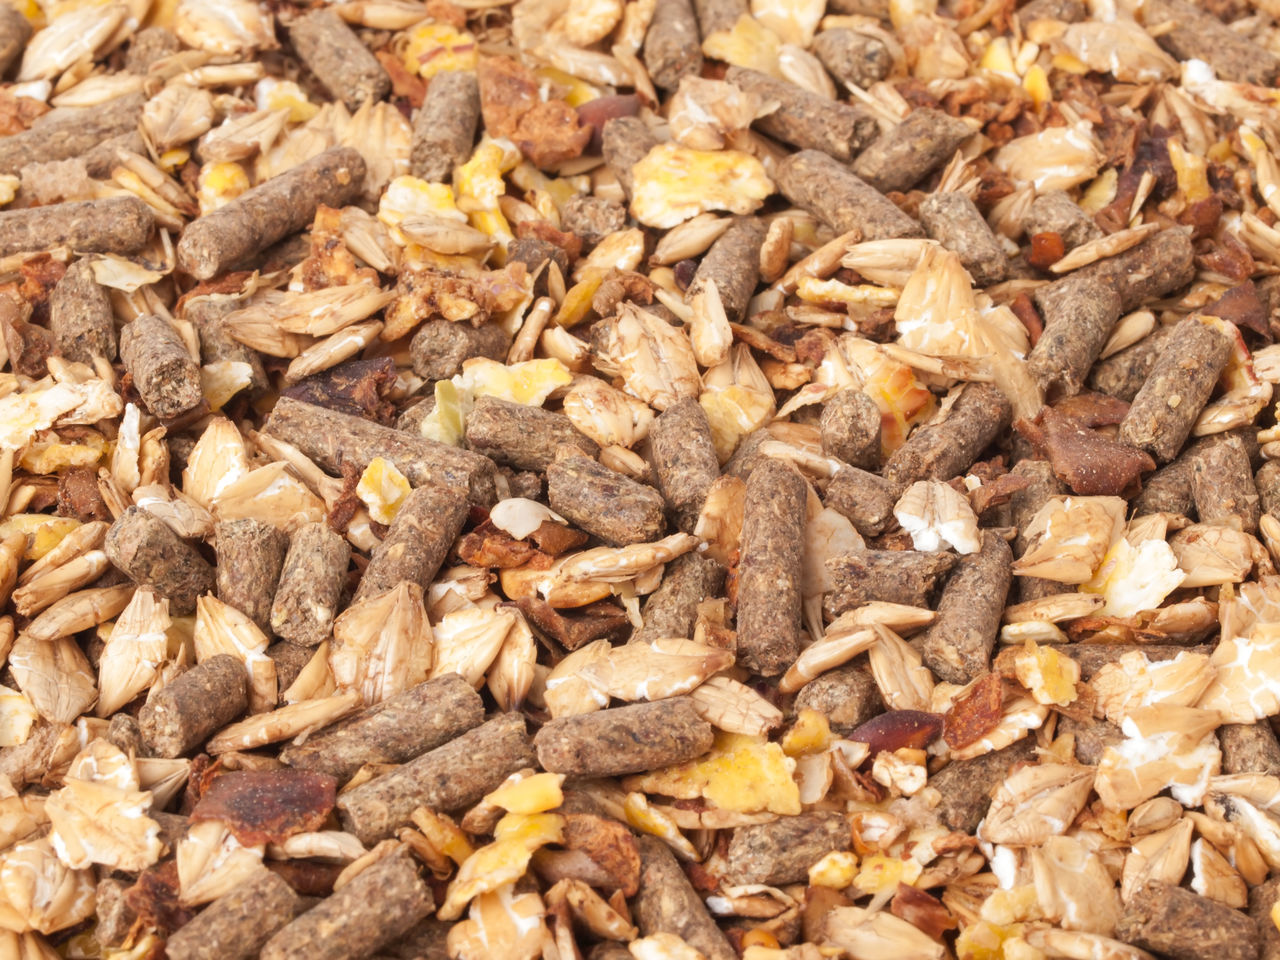 Backgrounds Close-up Day Drying Food Food And Drink Freshness Full Frame Healthy Eating Indoors  Ingredient Large Group Of Objects Muslie Nature No People Raisin Variation